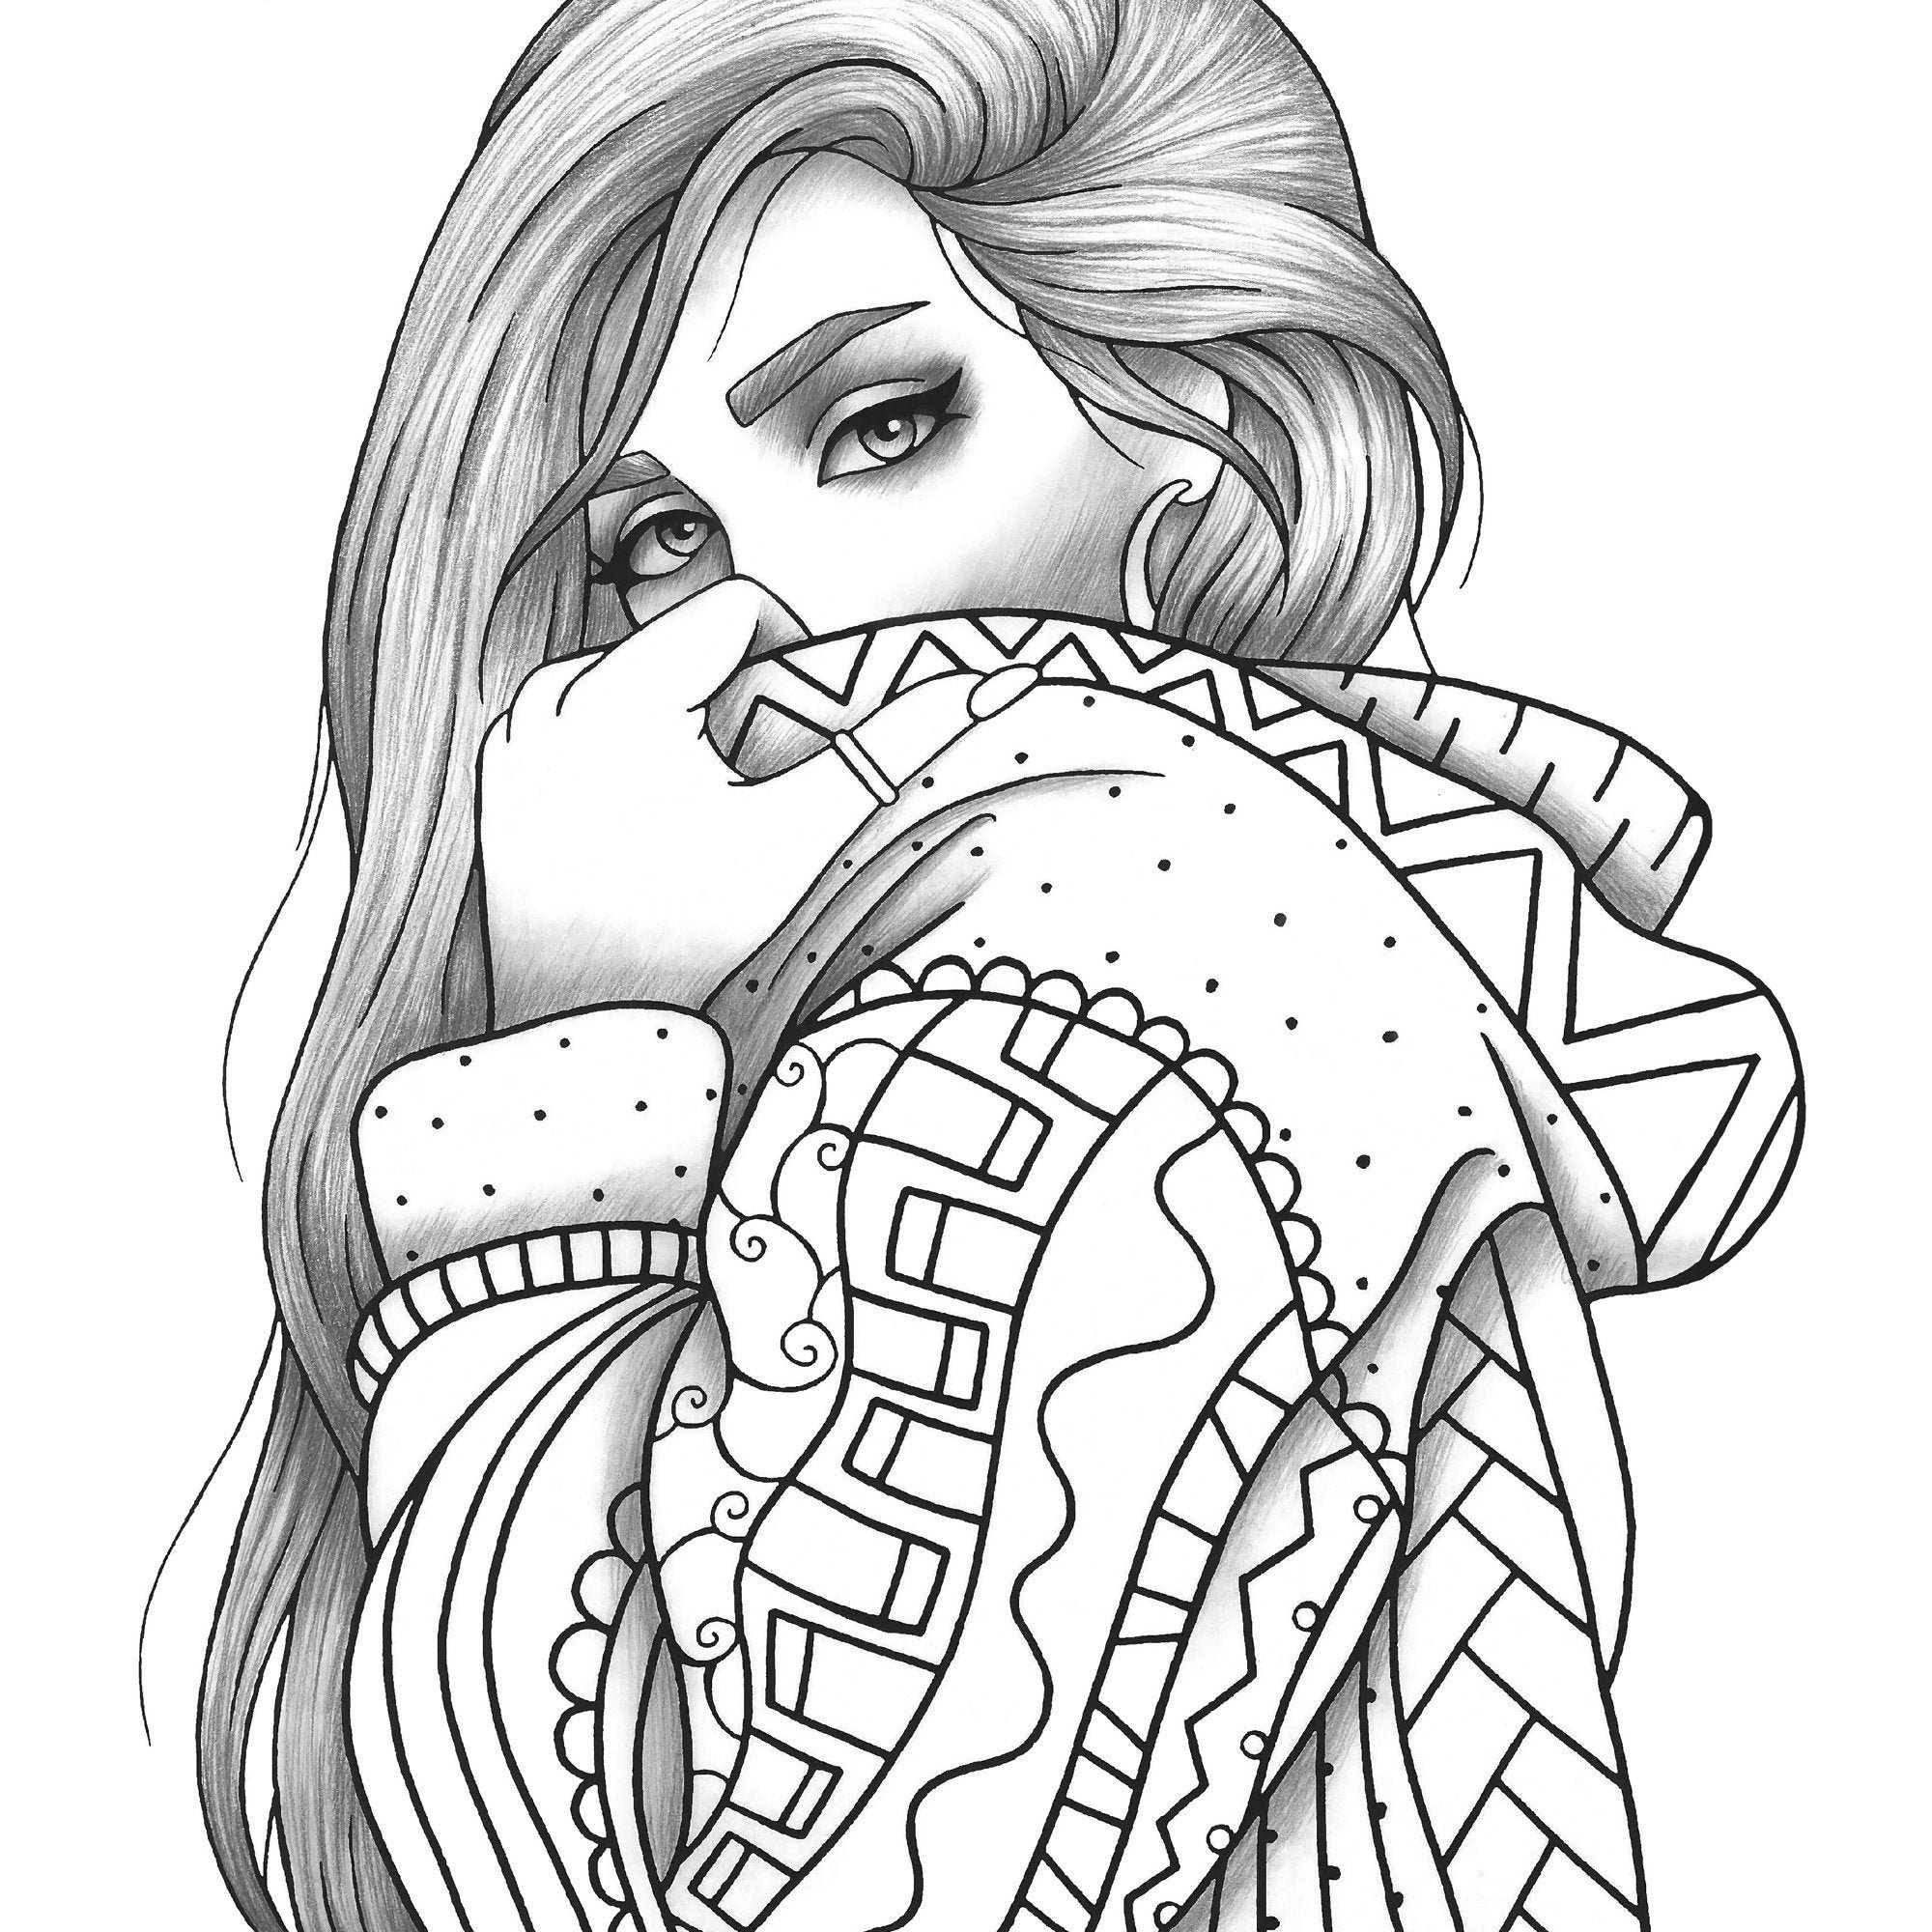 coloring books for girls adult coloring page girl portrait and clothes colouring books for girls coloring